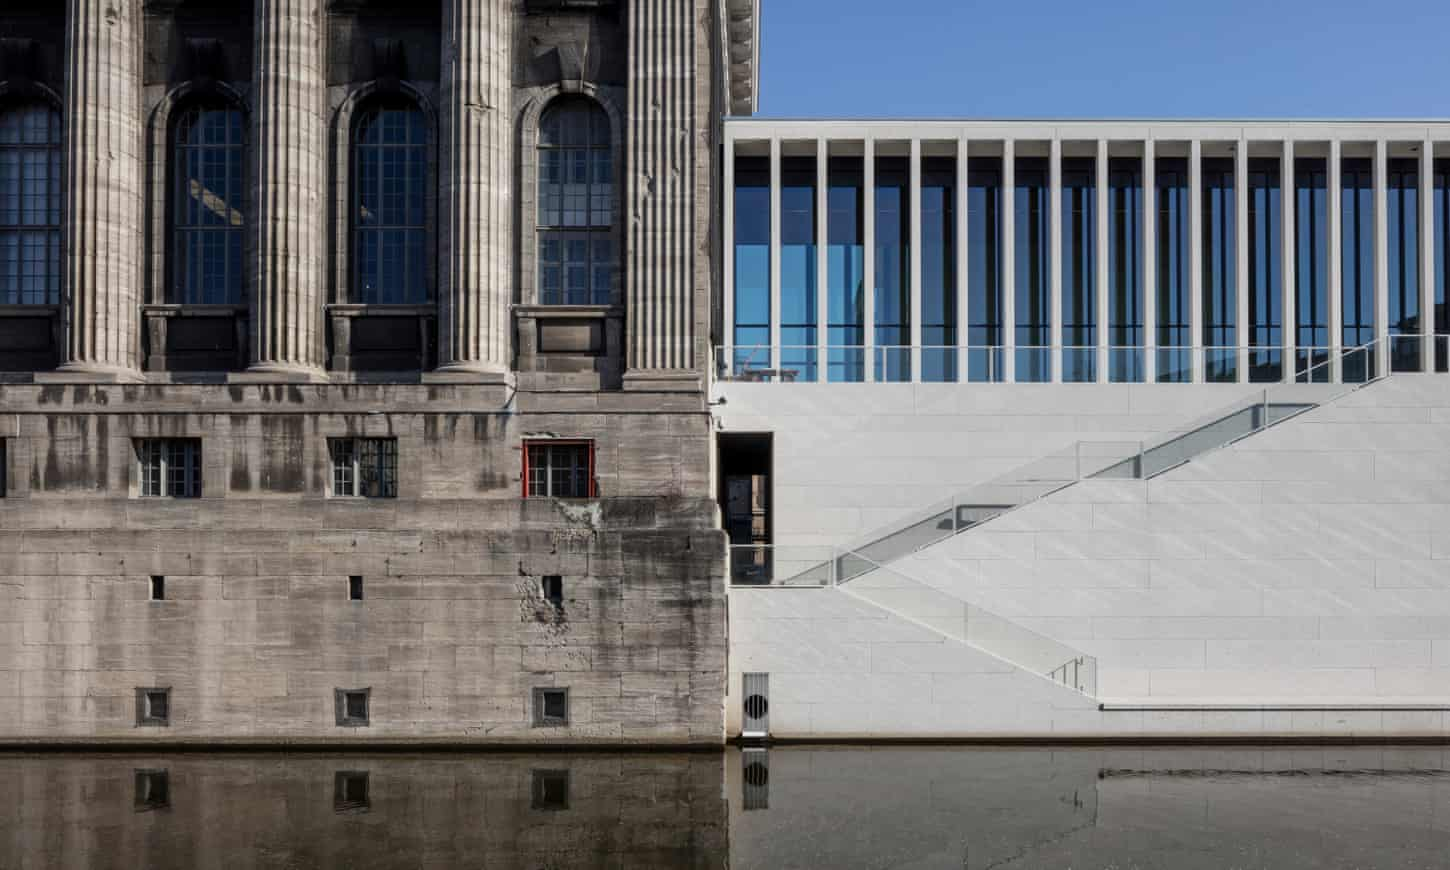 David Chipperfield's Berlin temple: 'Like ascending to the realm of the gods'